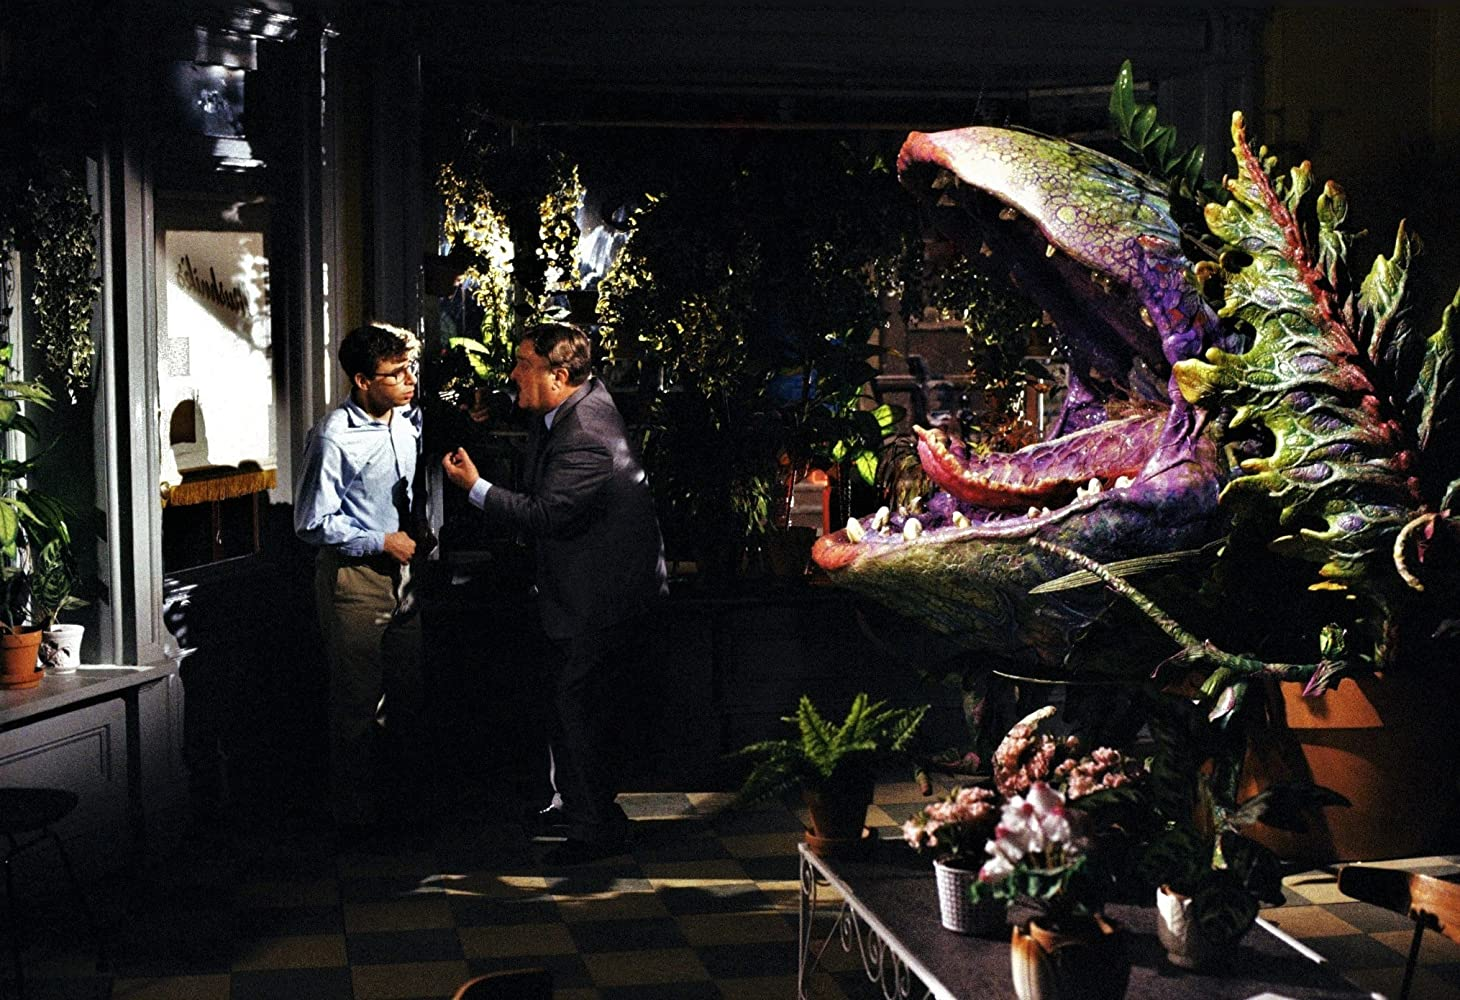 22 25 Things You Never Knew About Little Shop of Horrors